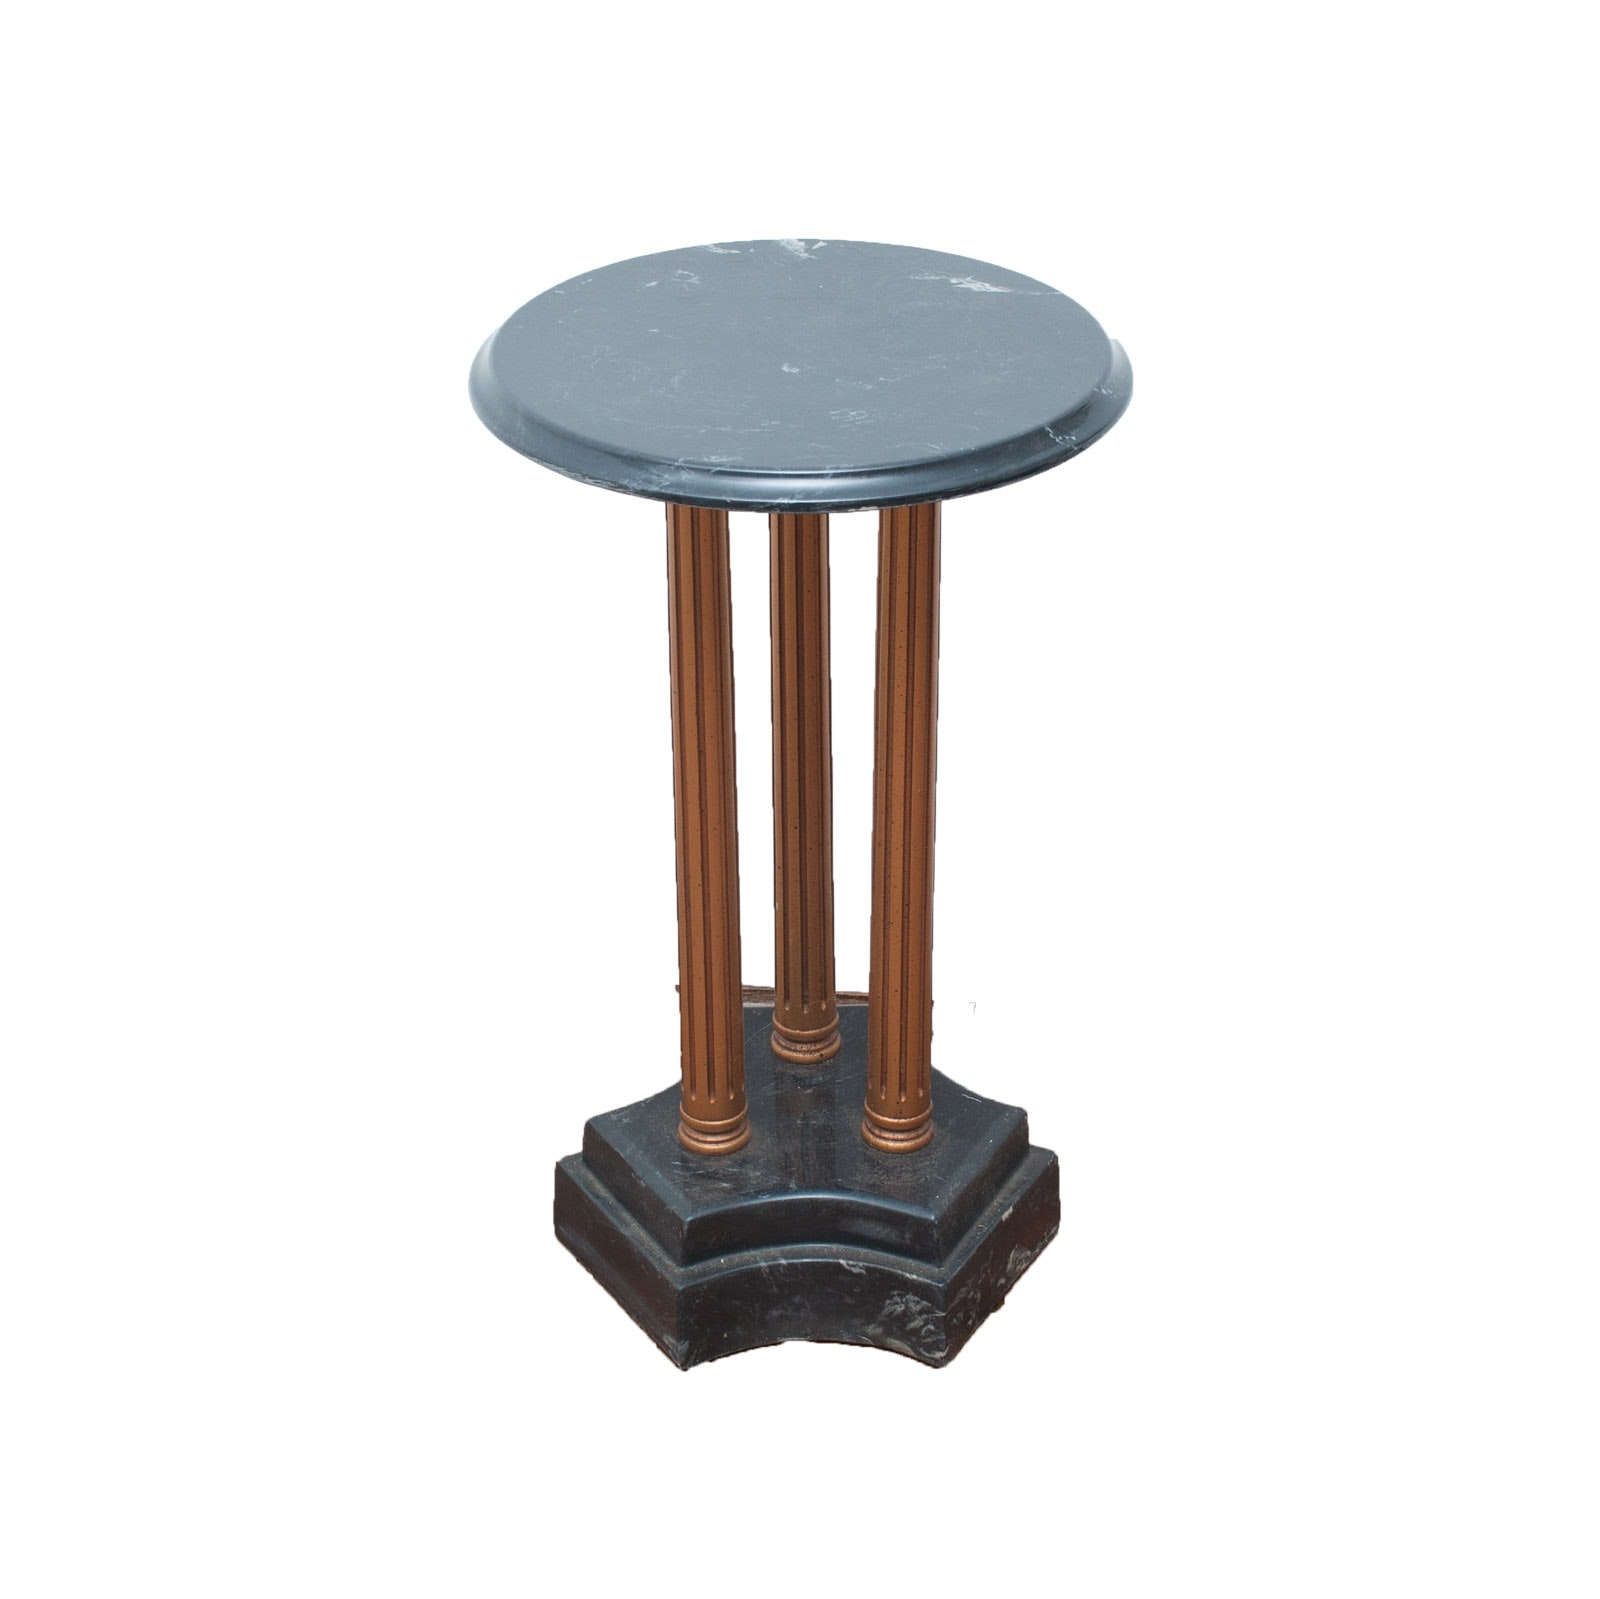 Black Marble and Wood Pedestal Accent Table